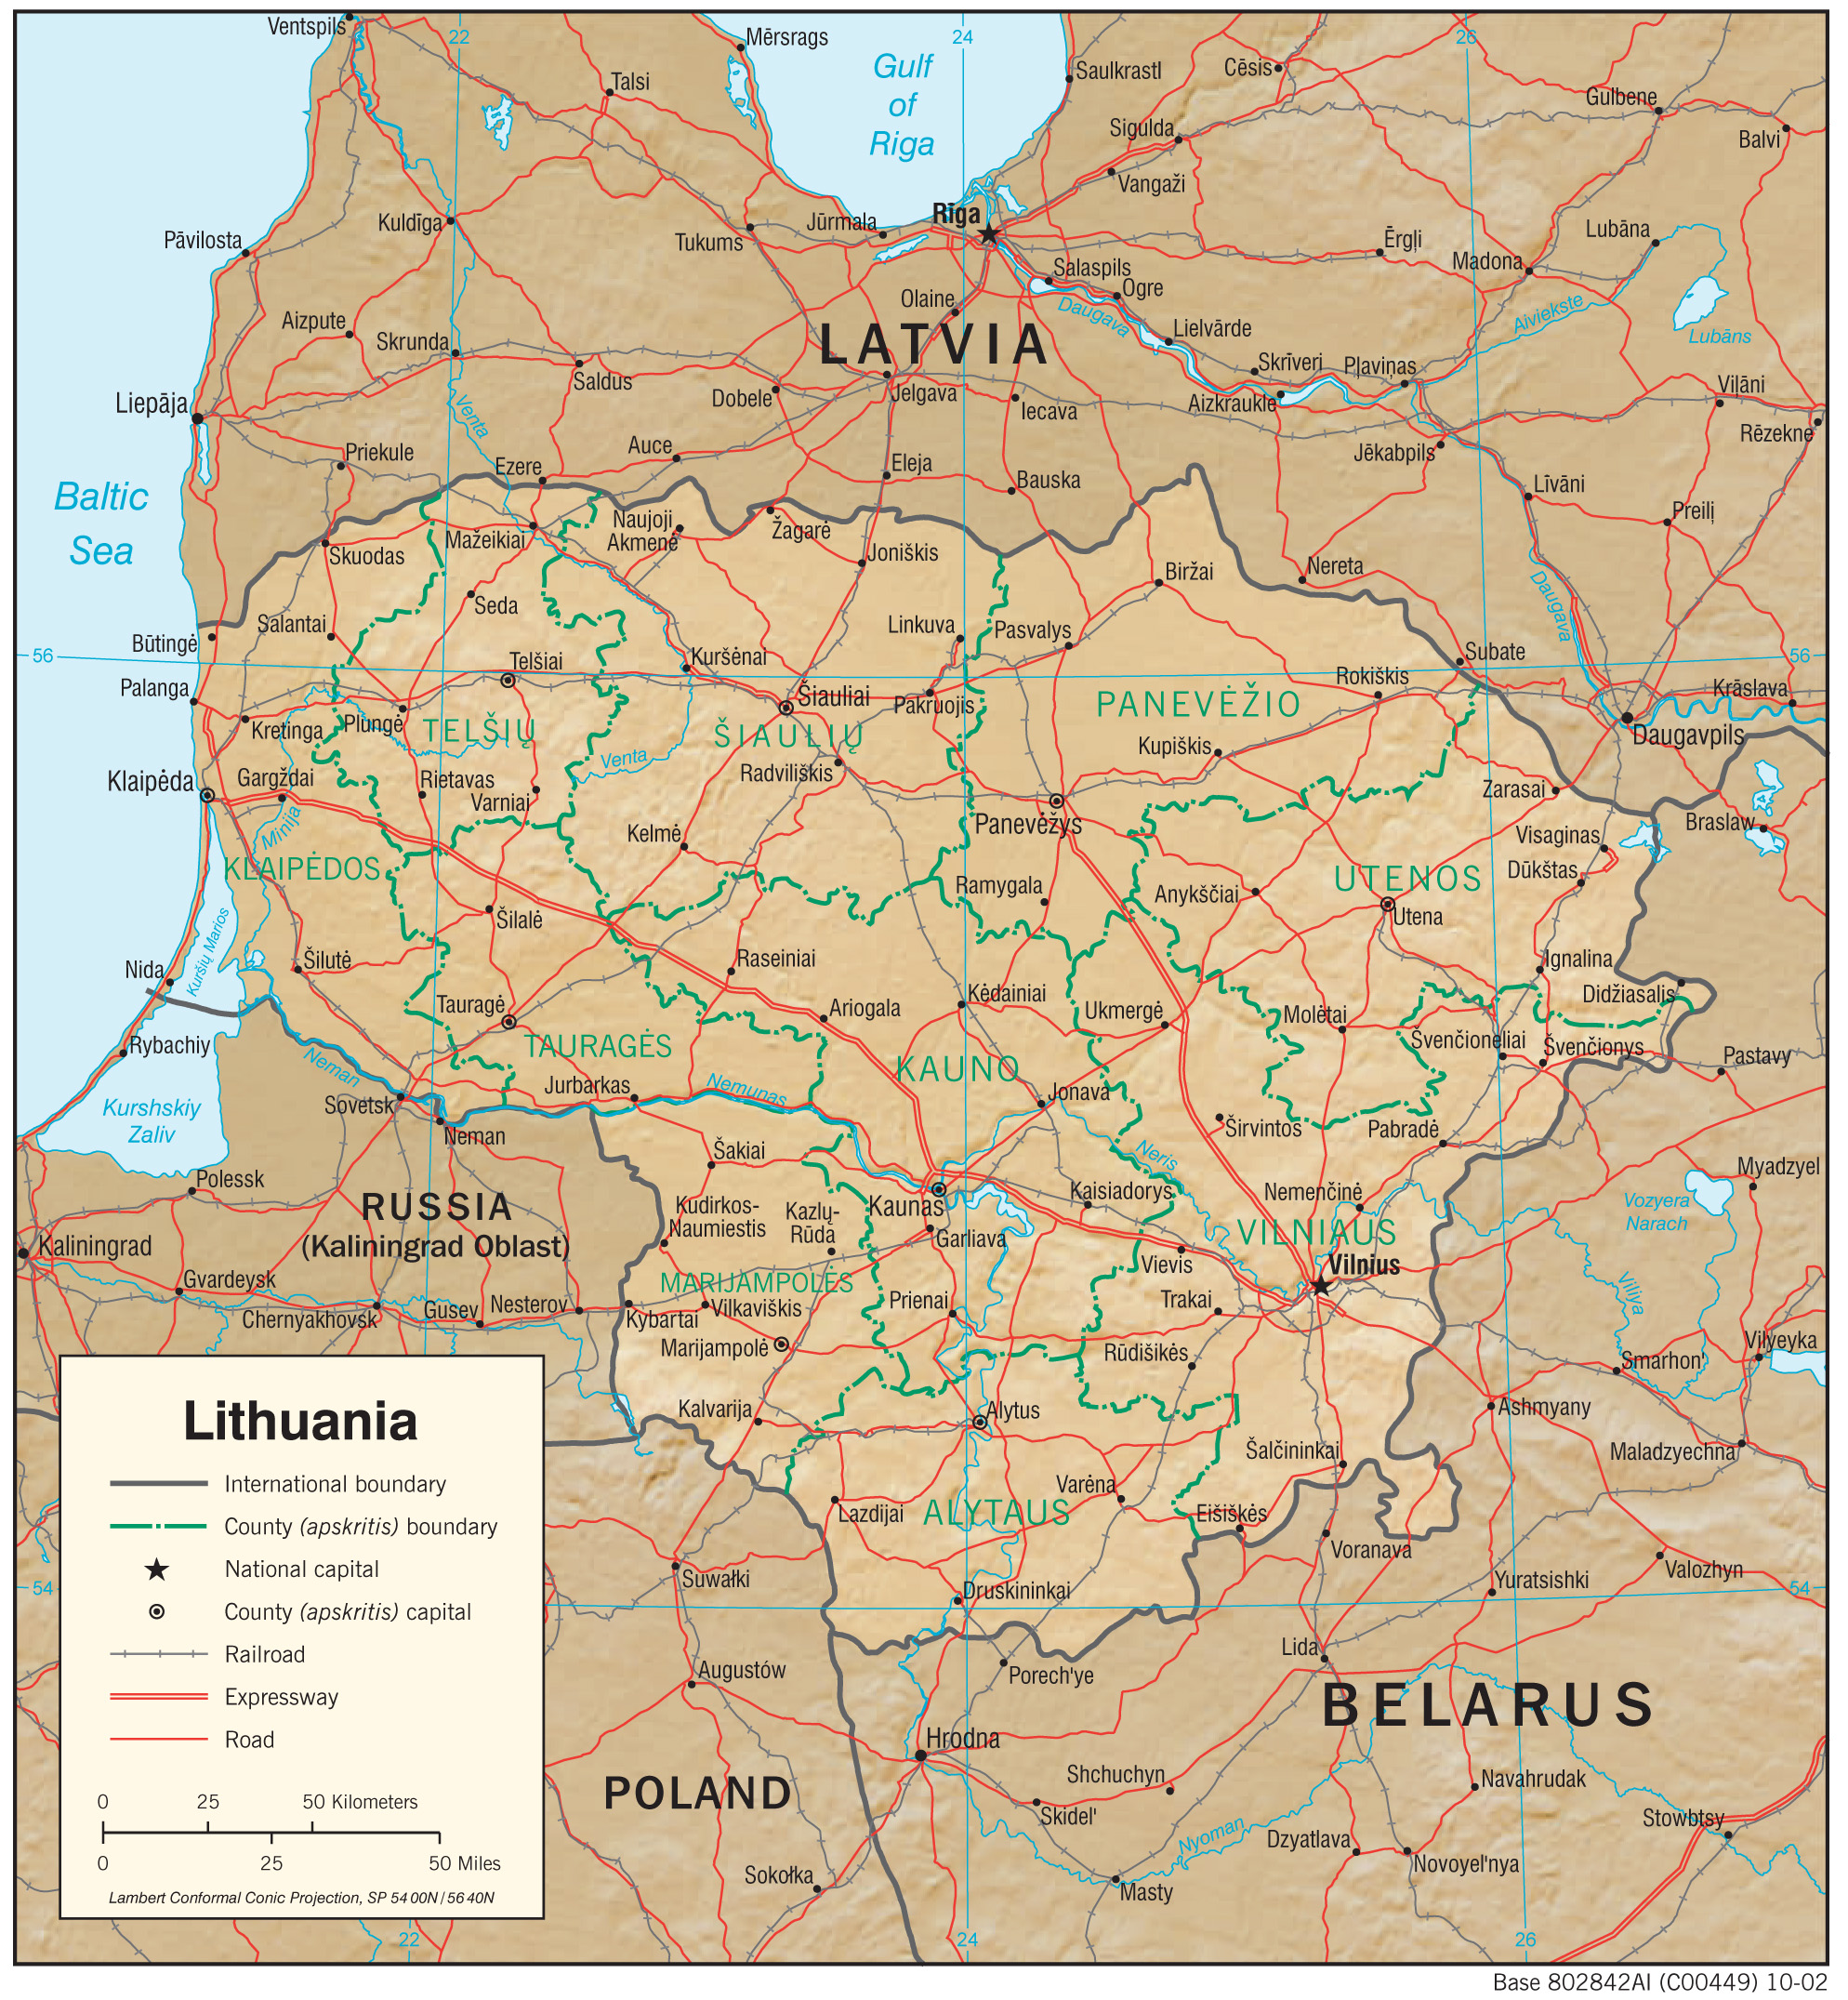 Maps of Lithuania   Detailed map of Lithuania in English ... Map Of Lithuania Airports on map of oman airports, map of south america airports, map of india airports, map of western europe airports, map of aruba airports, map of indonesia airports, map of kazakhstan airports, map of myanmar airports, map of kenya airports, map of iran airports, map of north america airports, map of bolivia airports, map of the dominican republic airports, map of zimbabwe airports, map of u.s. airports, map of swaziland airports, map of taiwan airports, map of sri lanka airports, map of haiti airports, map of north korea airports,